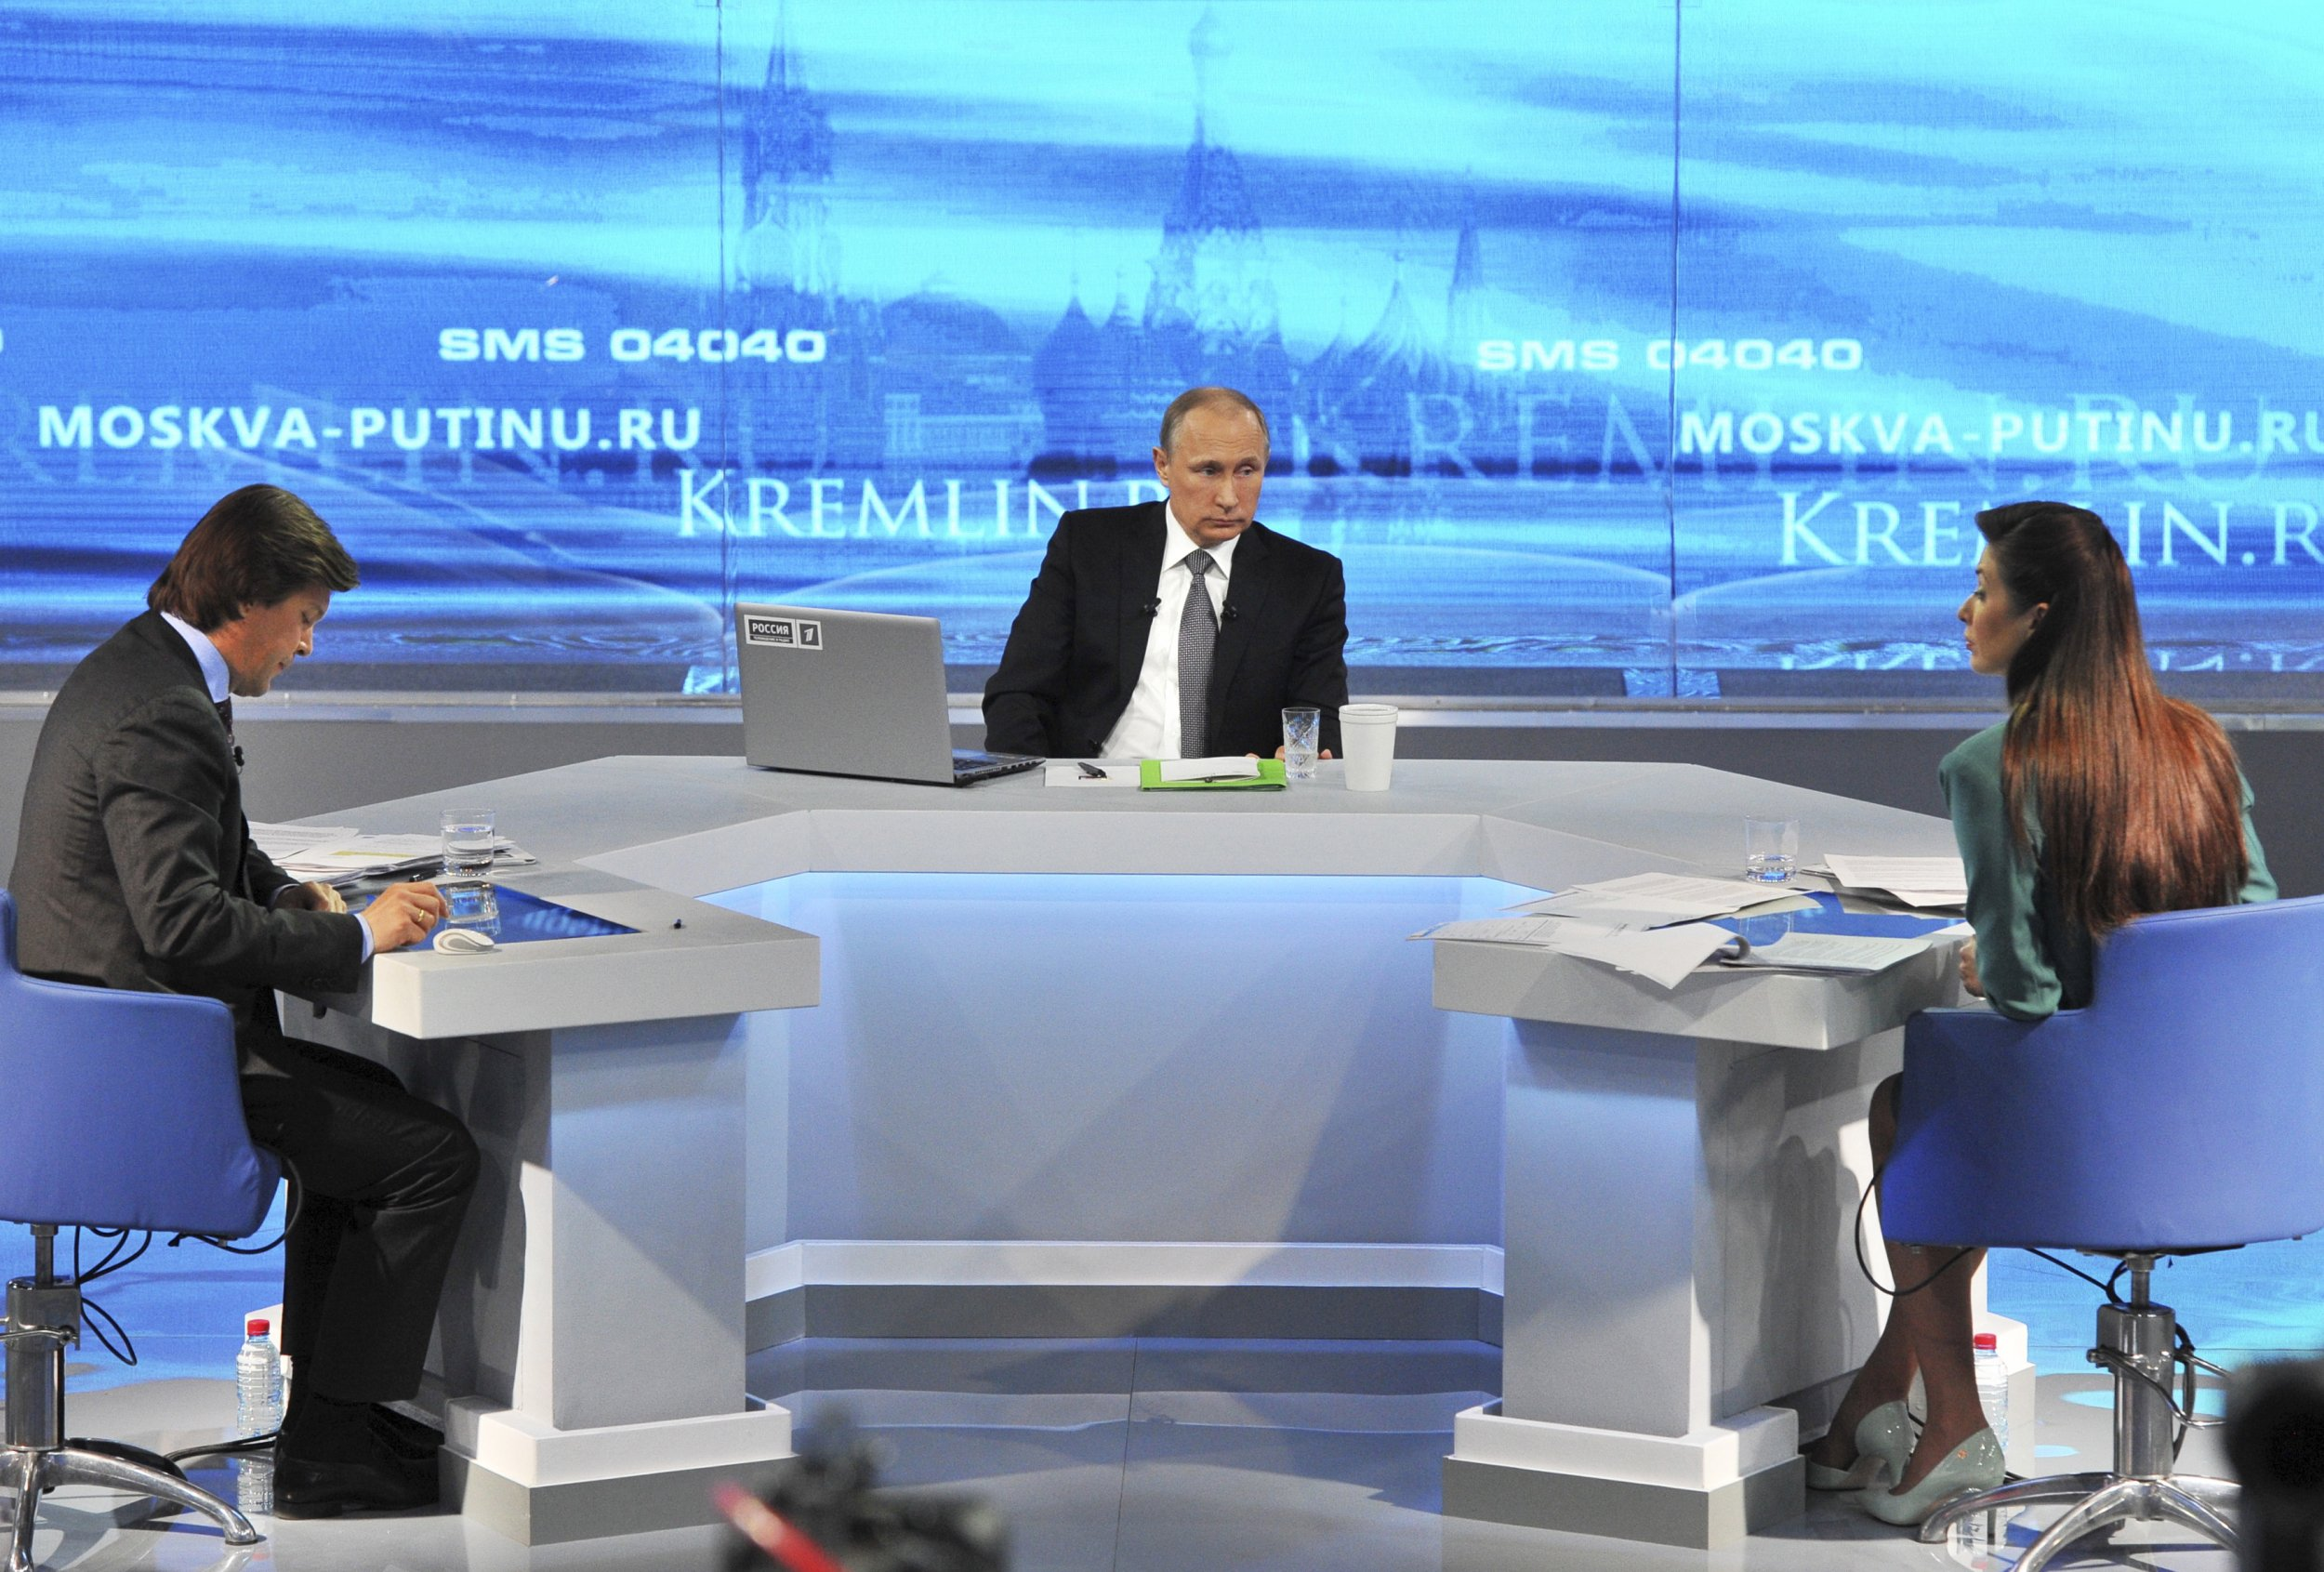 Putin sits at his desk during the telethon